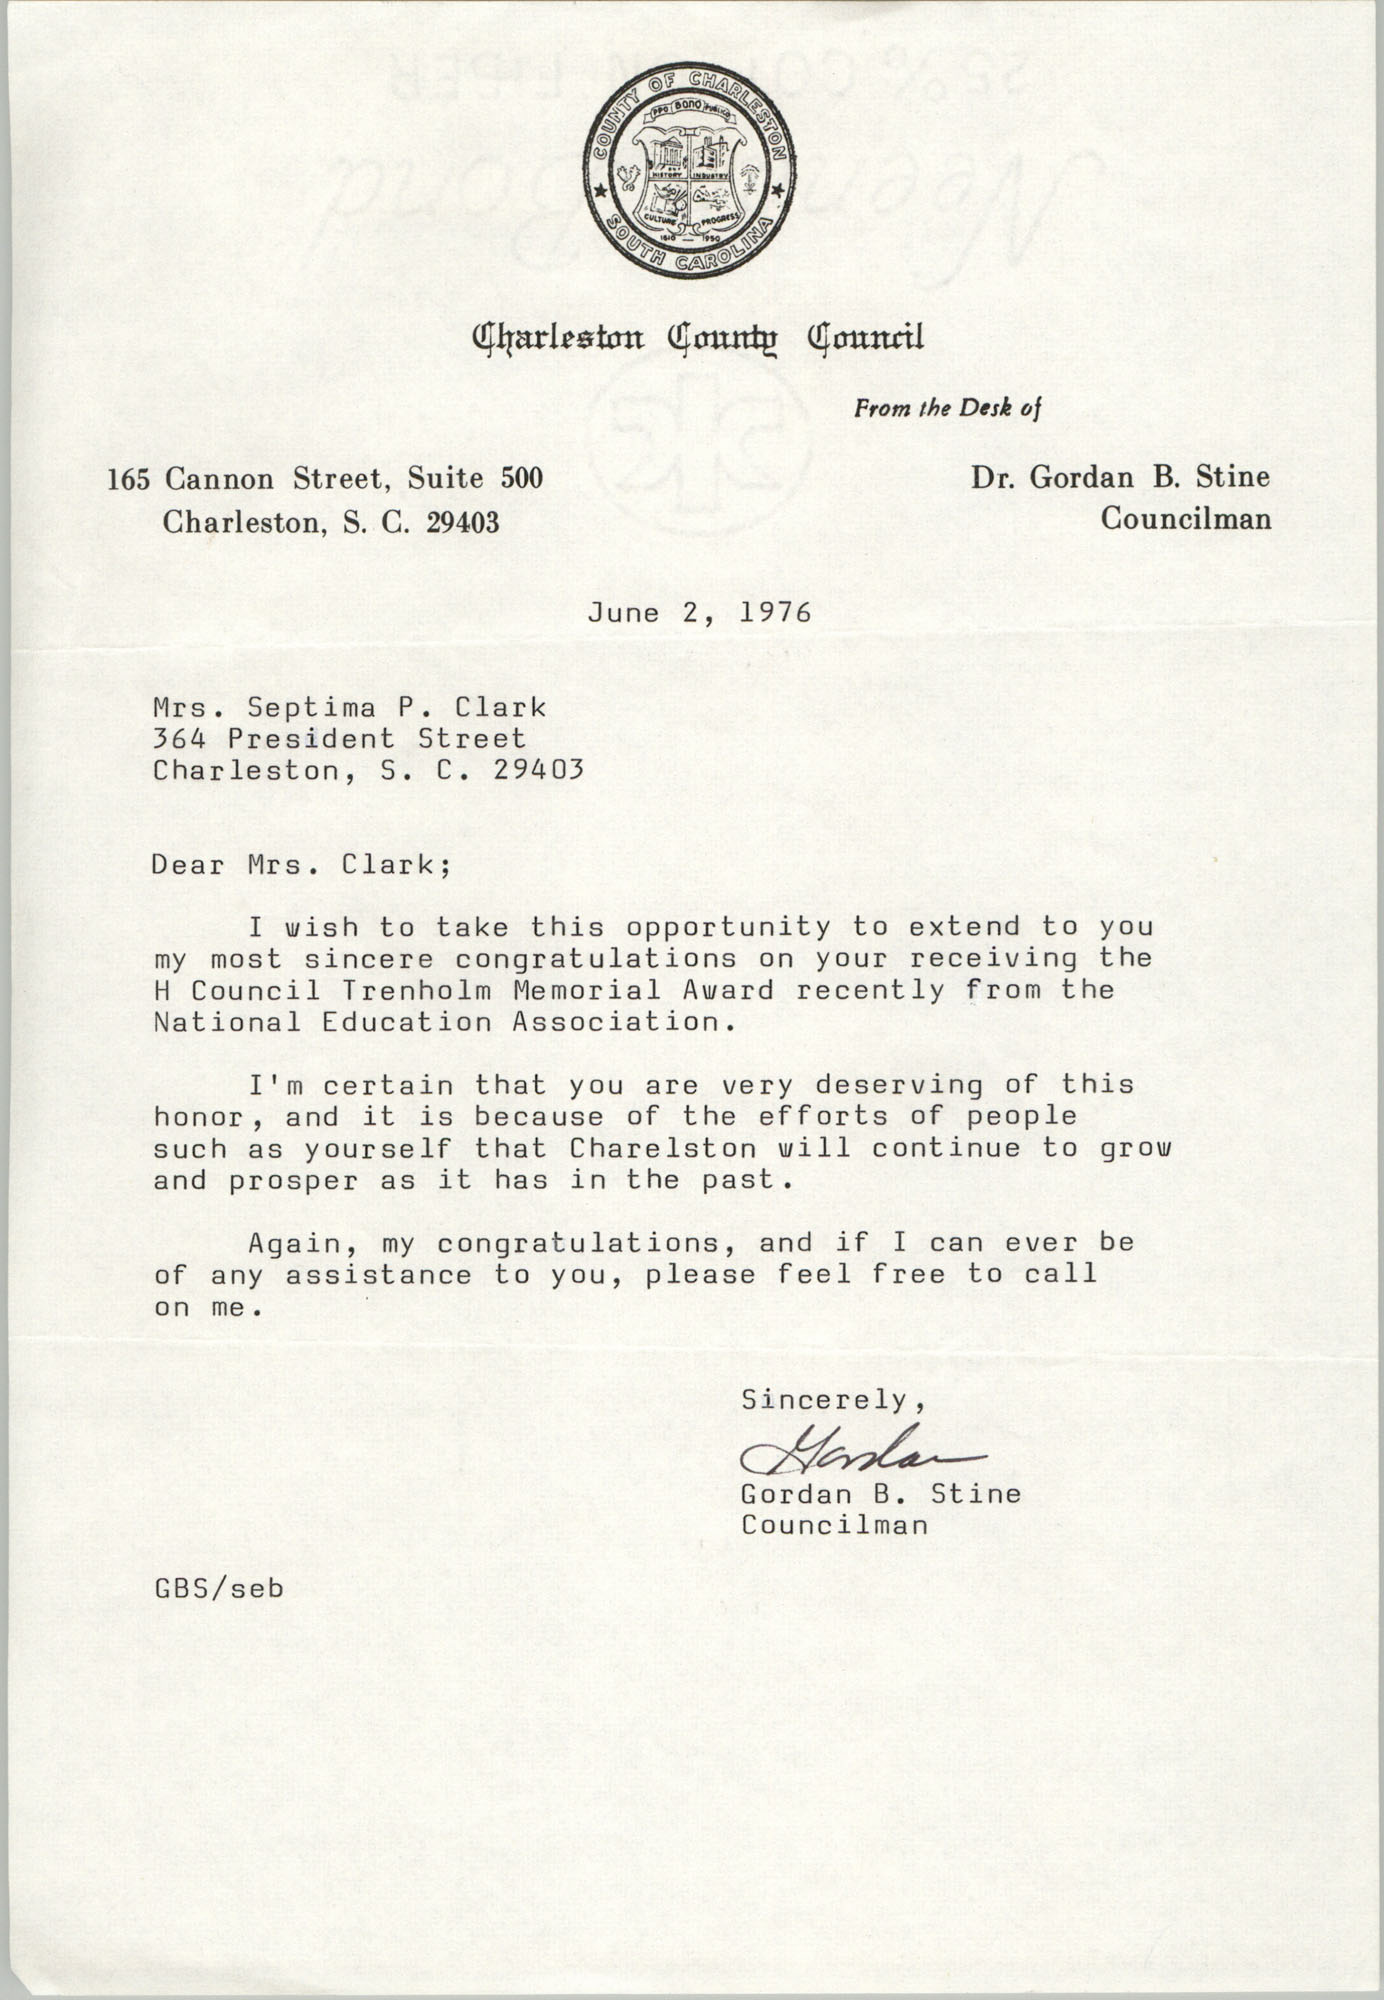 Letter from Charleston County Councilman Gordan B. Stine to Septima P. Clark, June 2, 1976